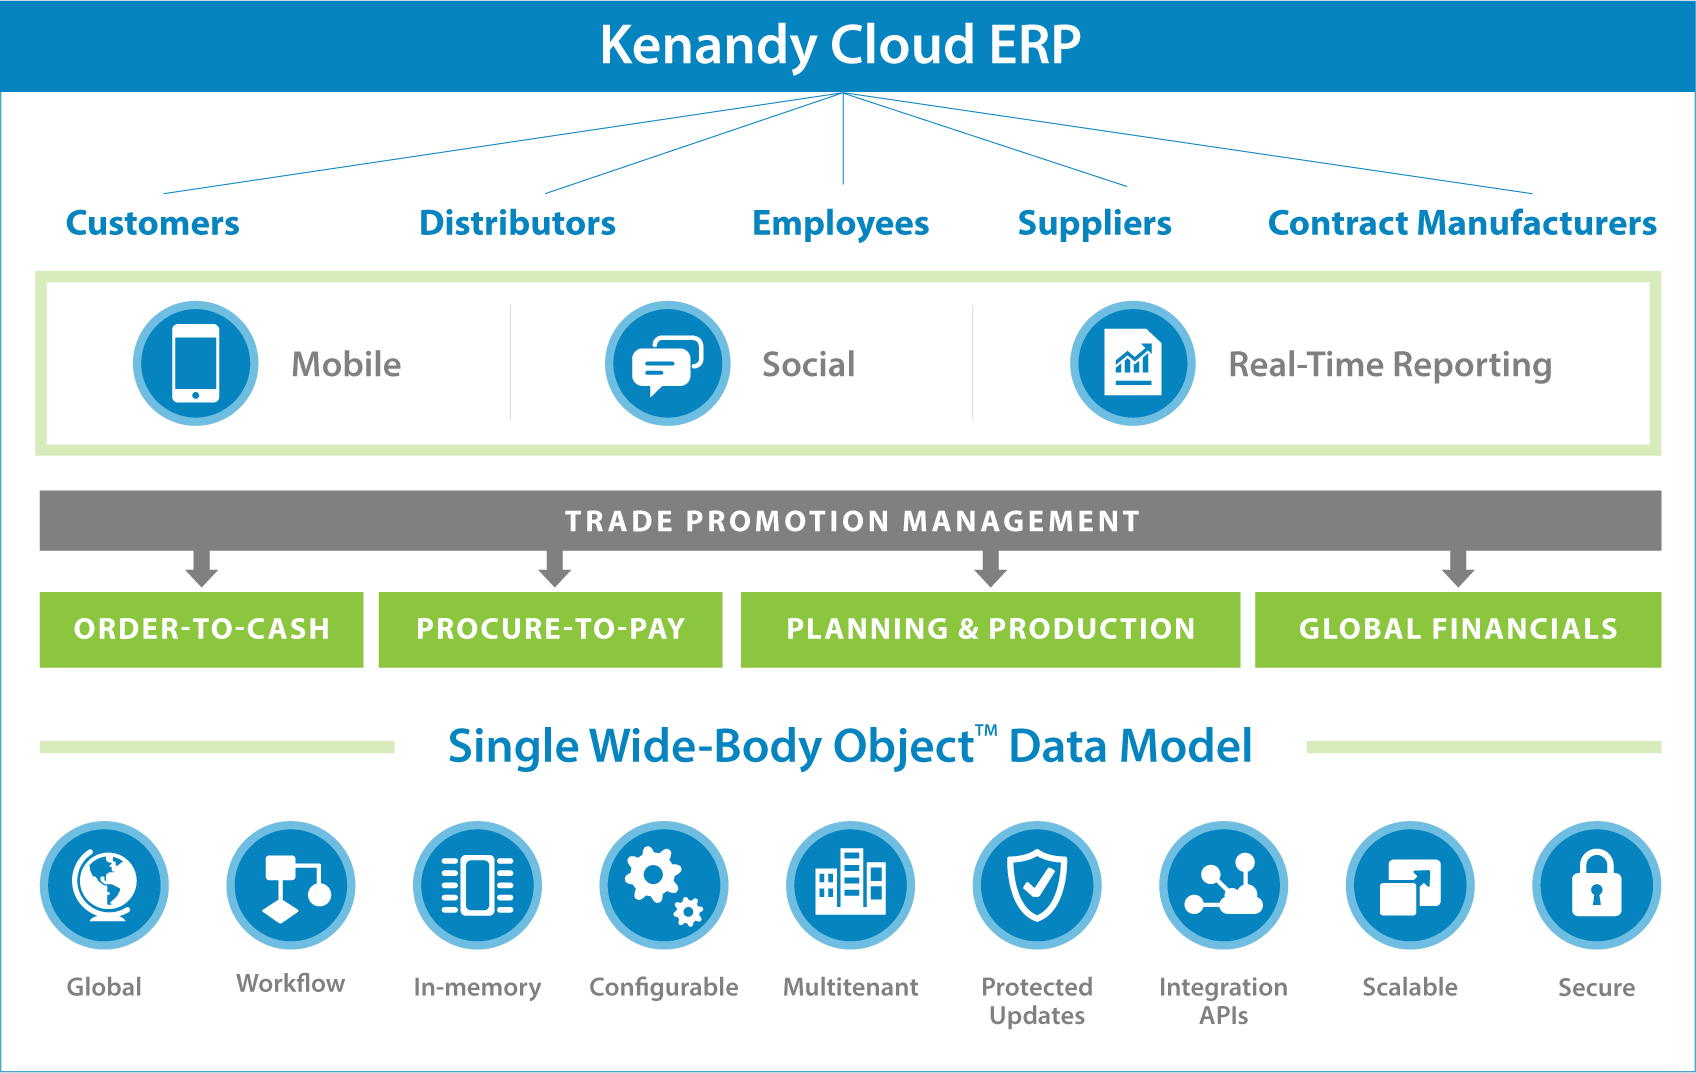 Kenandy Cloud ERP